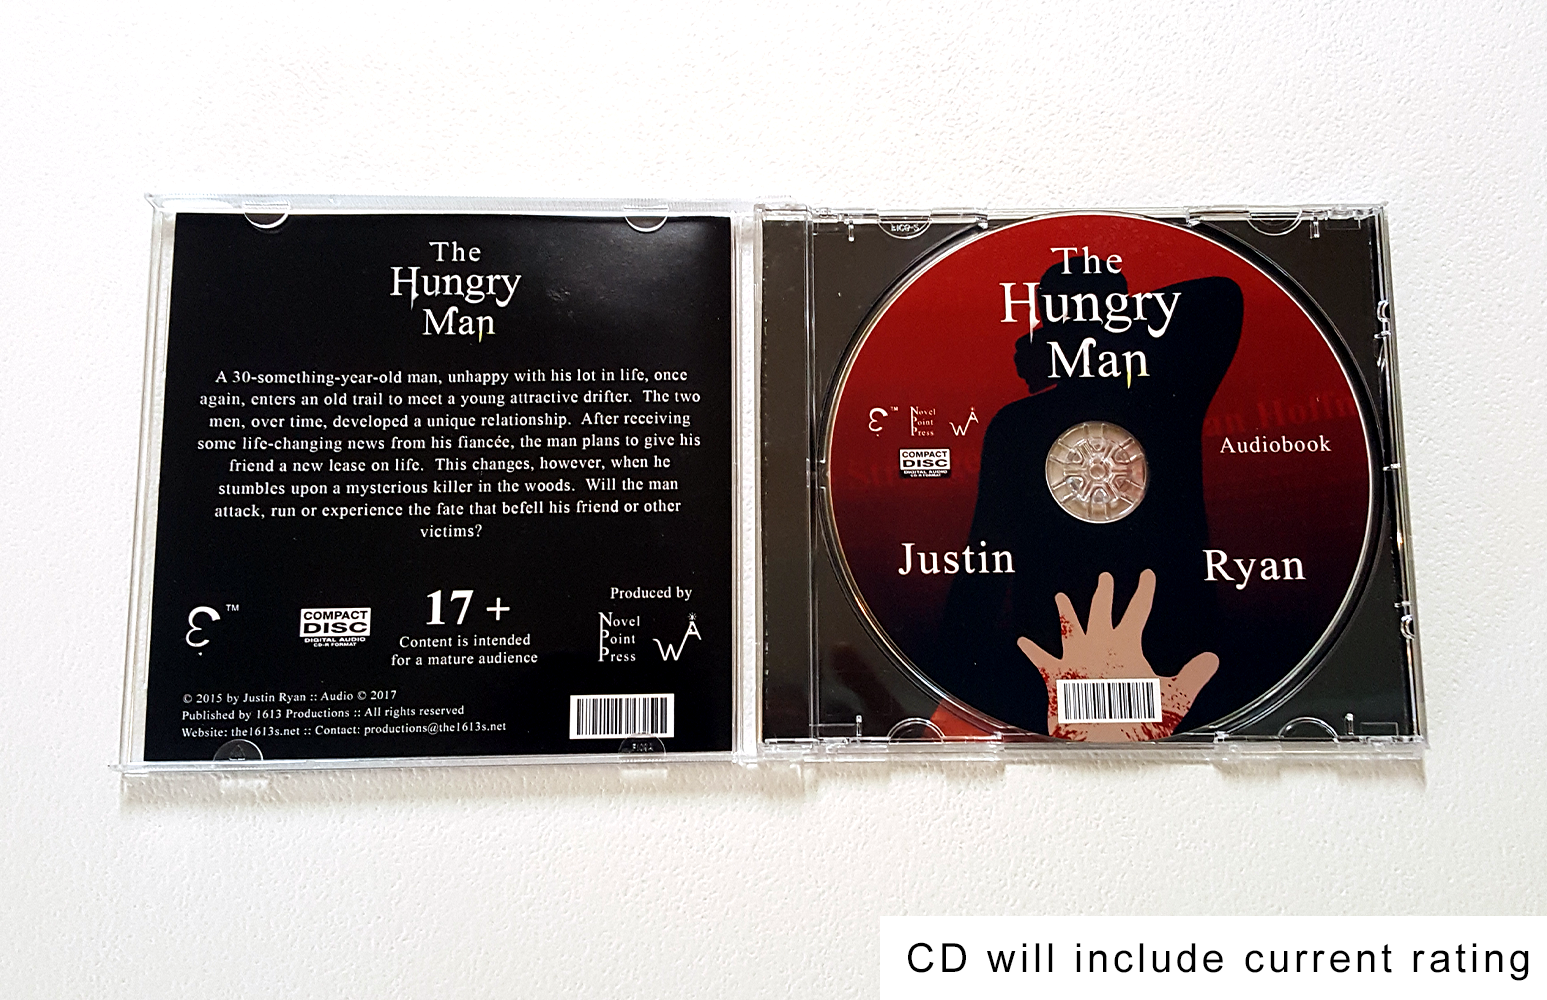 The Hungry Man (Audiobook CD) (image 4)